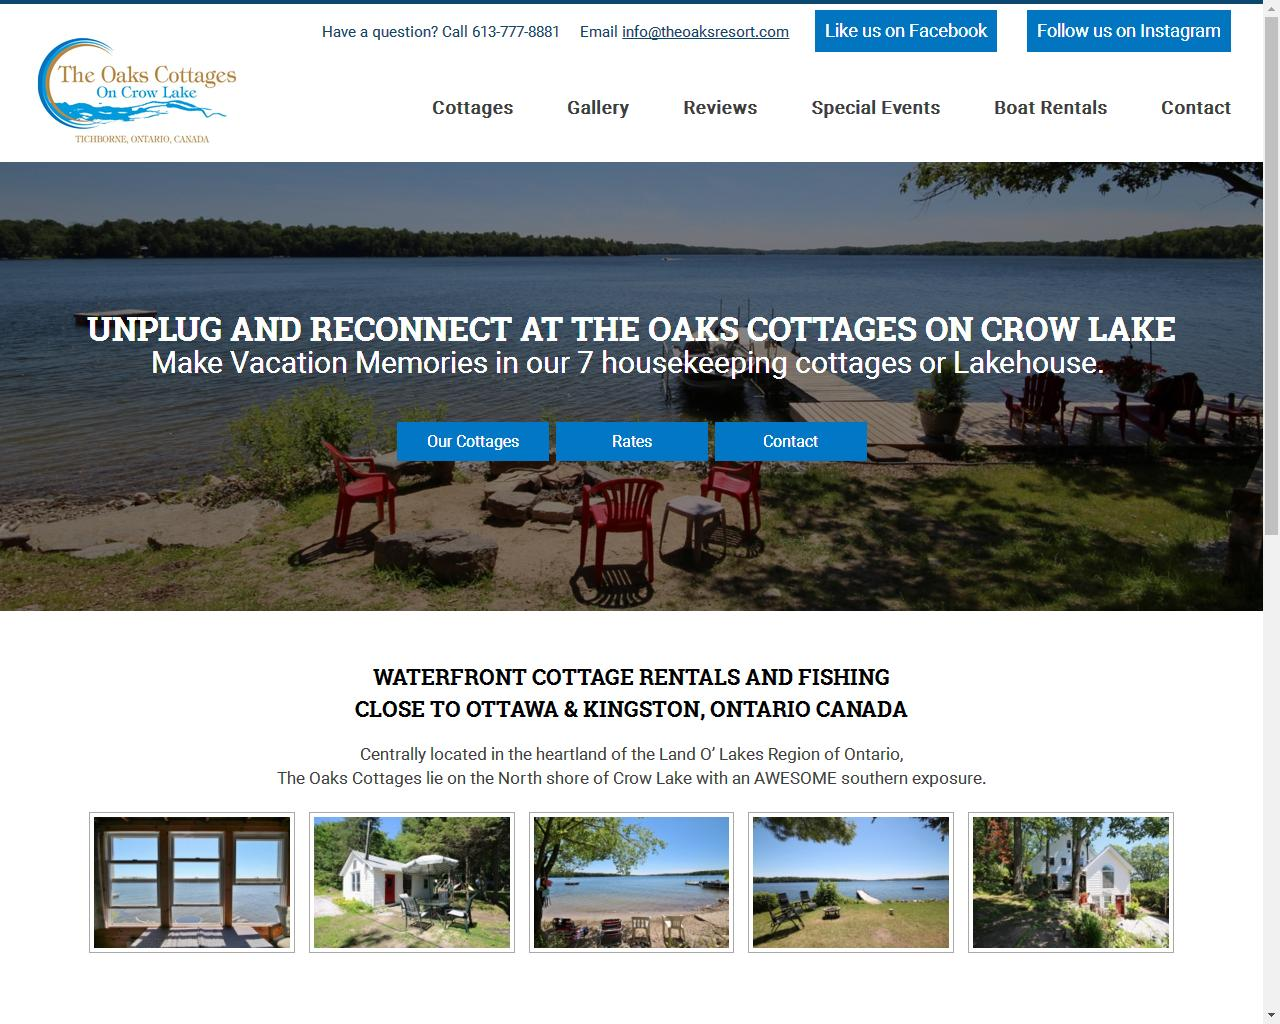 ToThe Oaks Cottages on Crow Lake